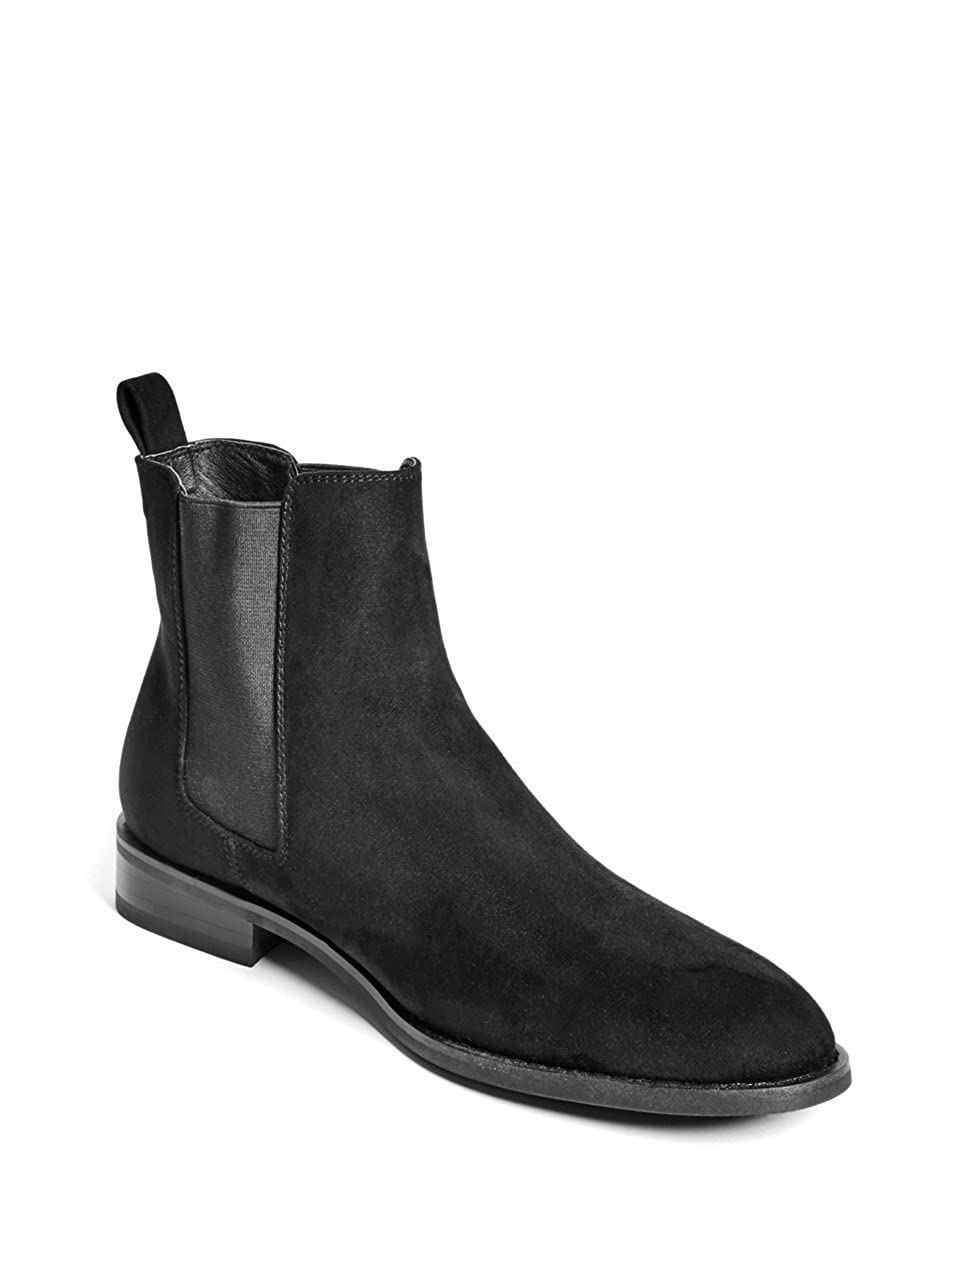 G by GUESS Men's Jeb Chelsea Boots GByGUESS GXJEB